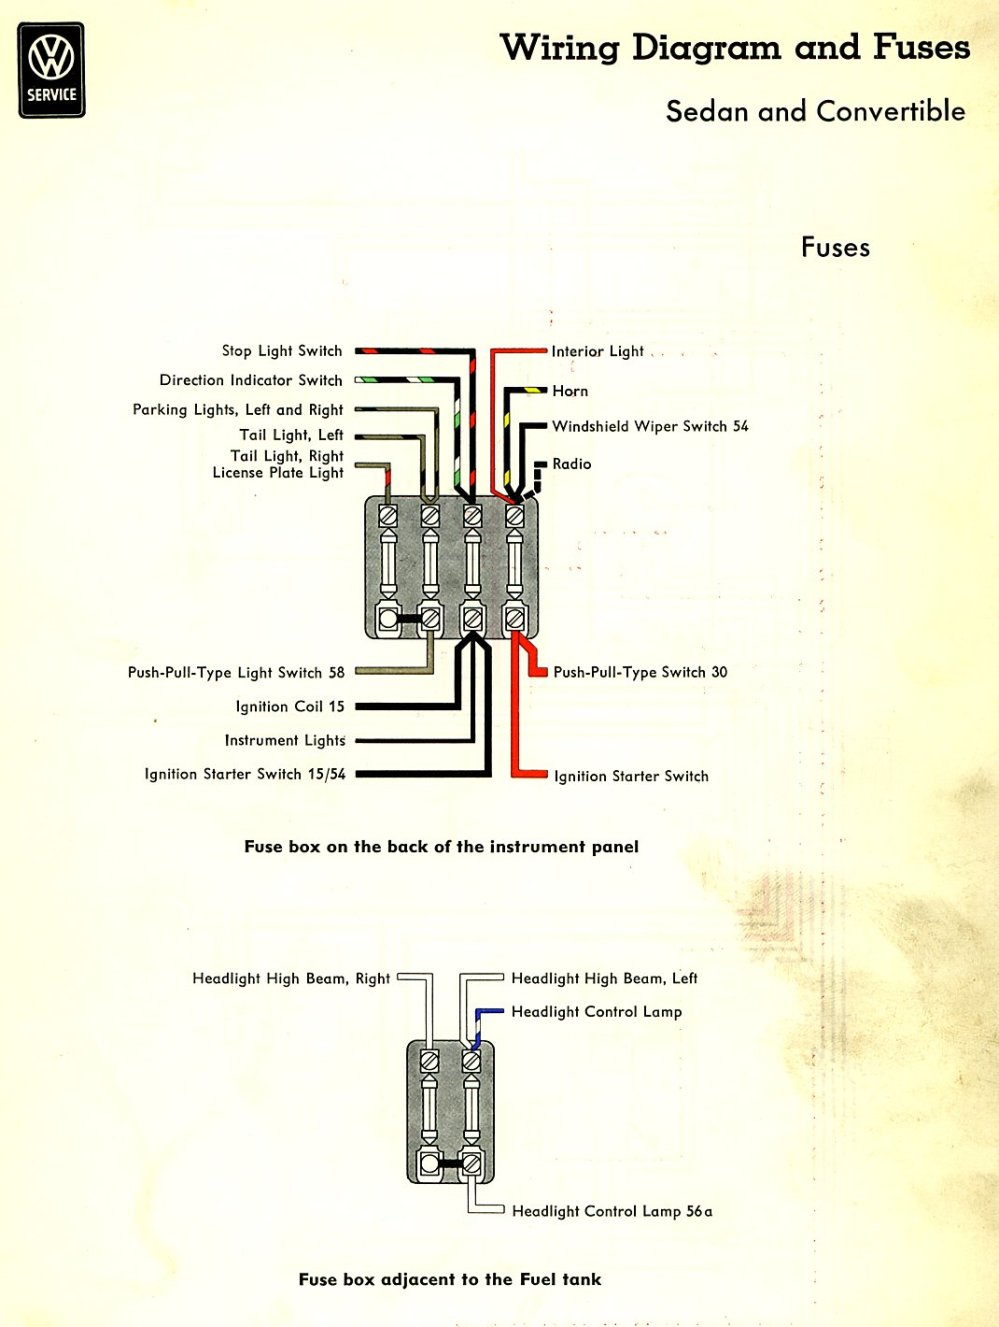 medium resolution of wrg 7170 1955 corvette fuse box diagram 1955 corvette fuse box diagram